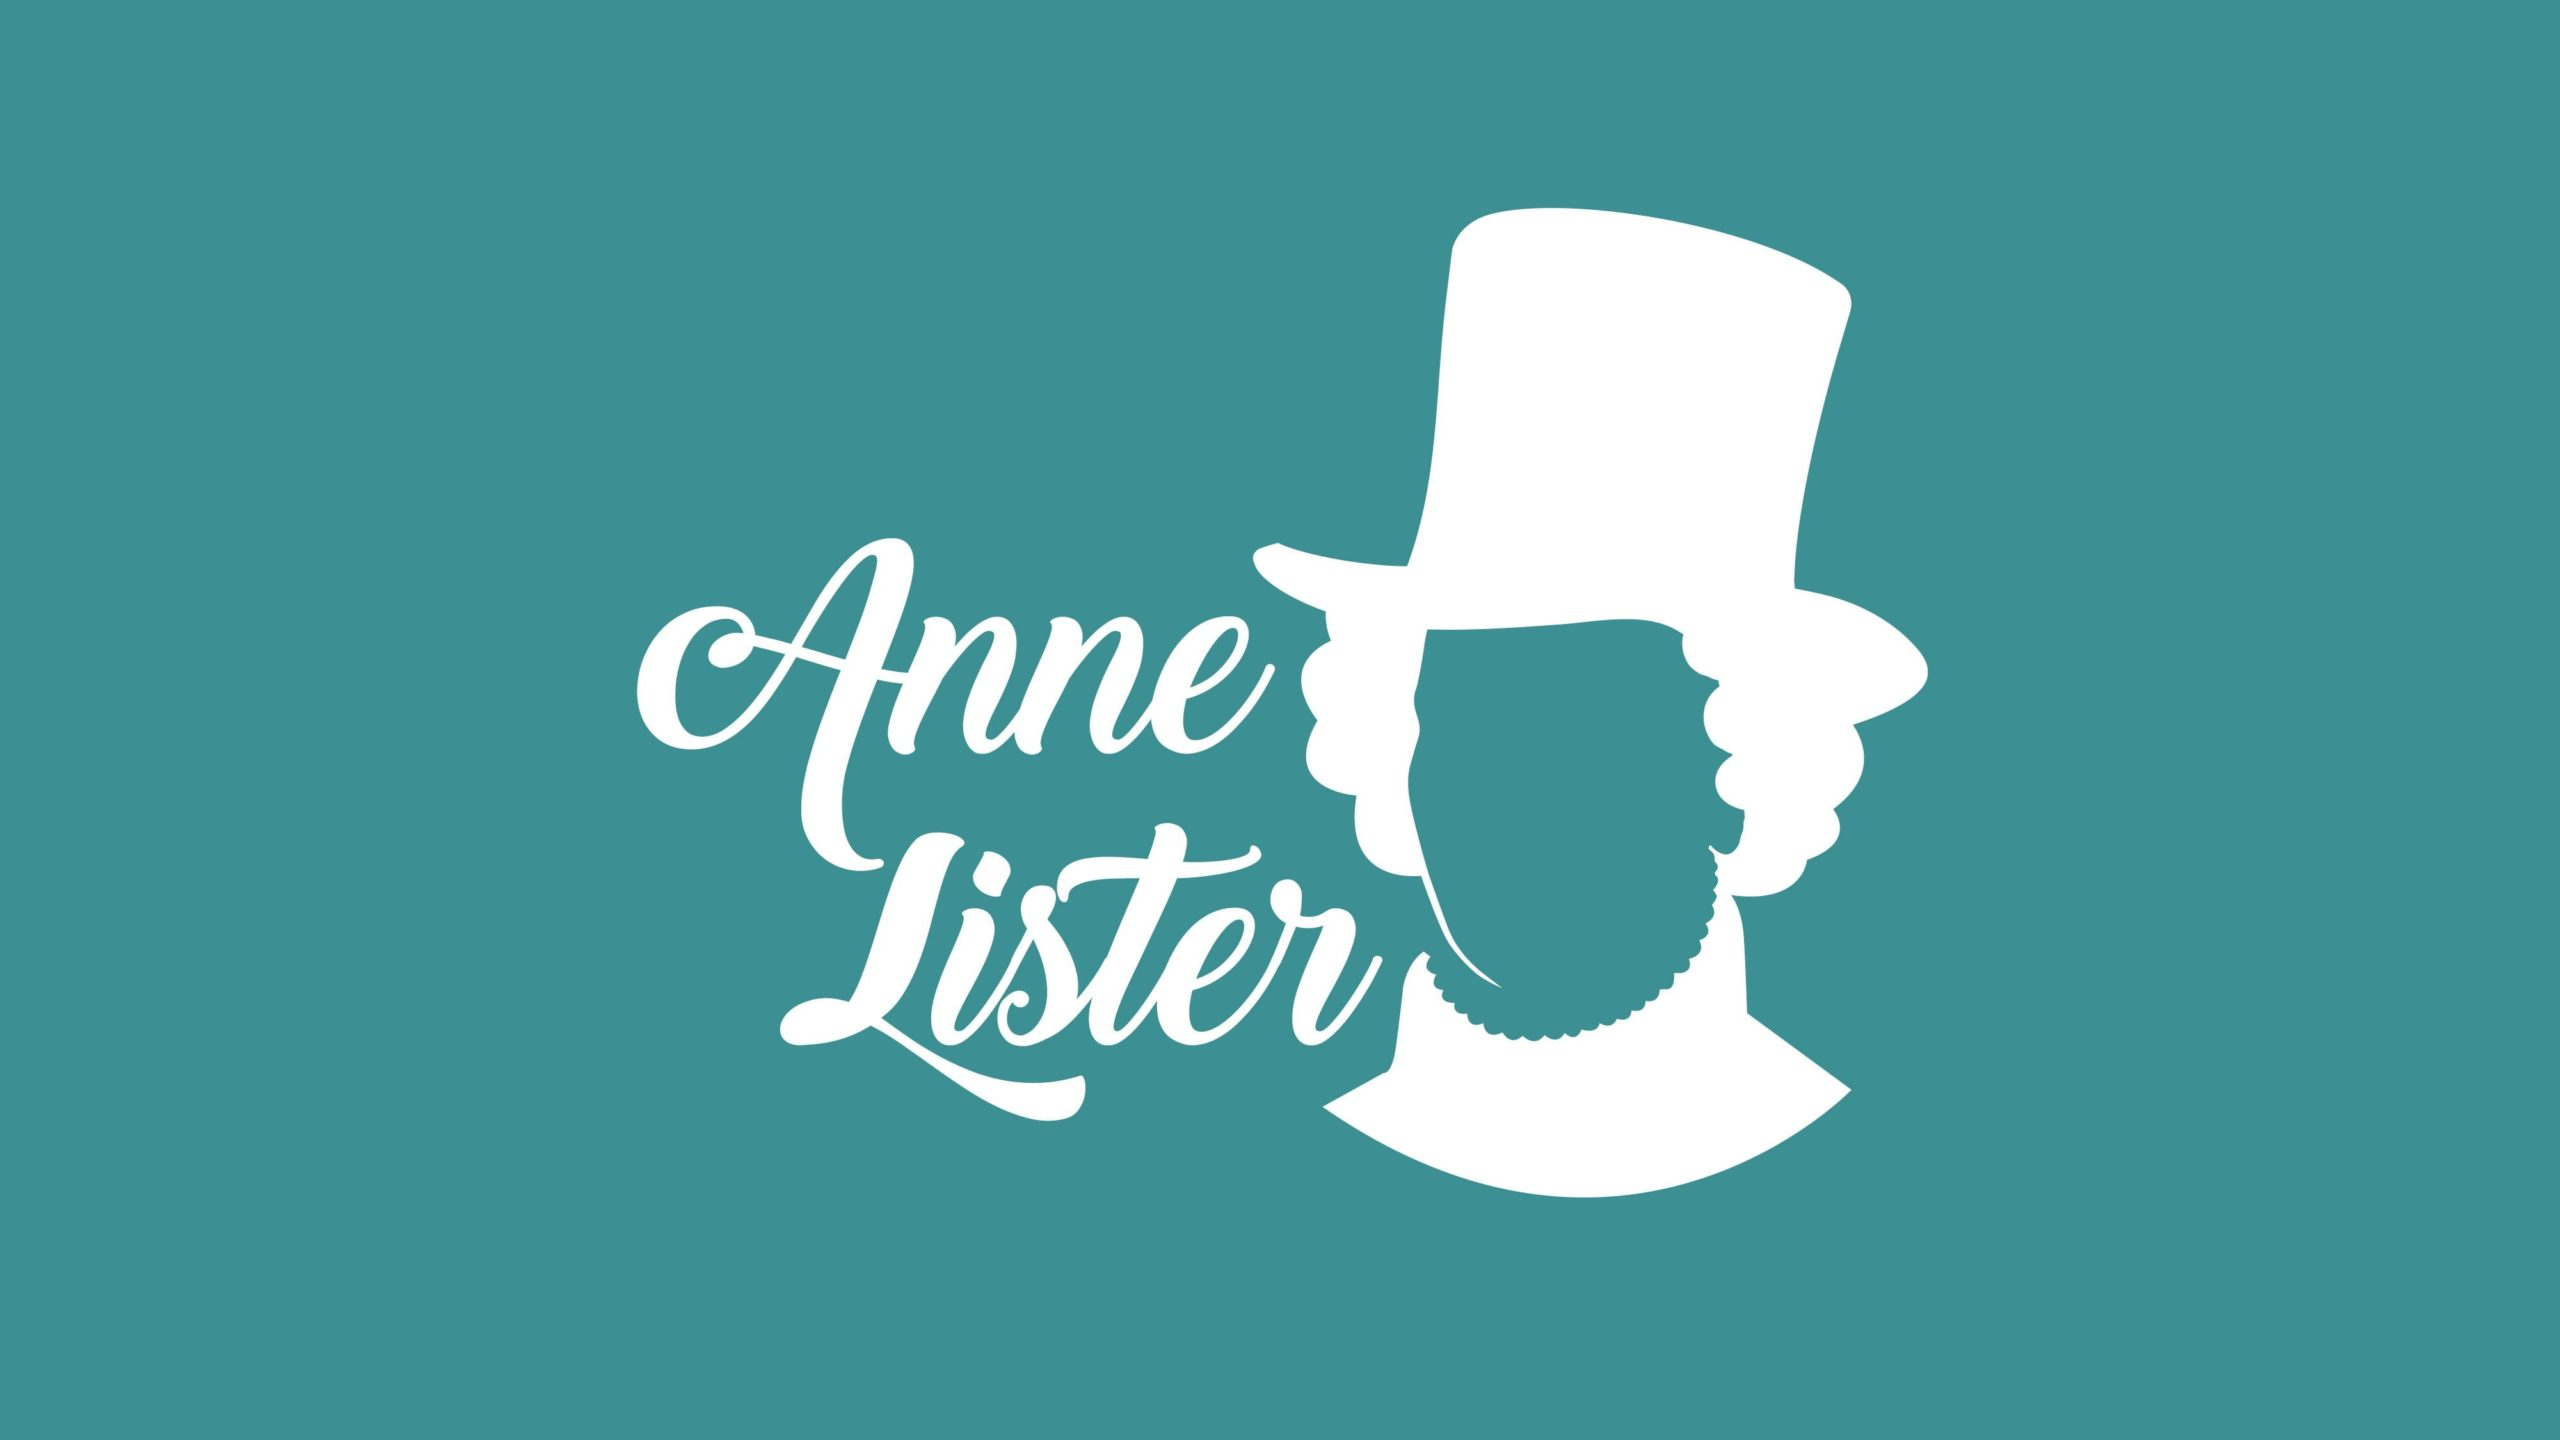 Anne Lister's Halifax: Her Public Face